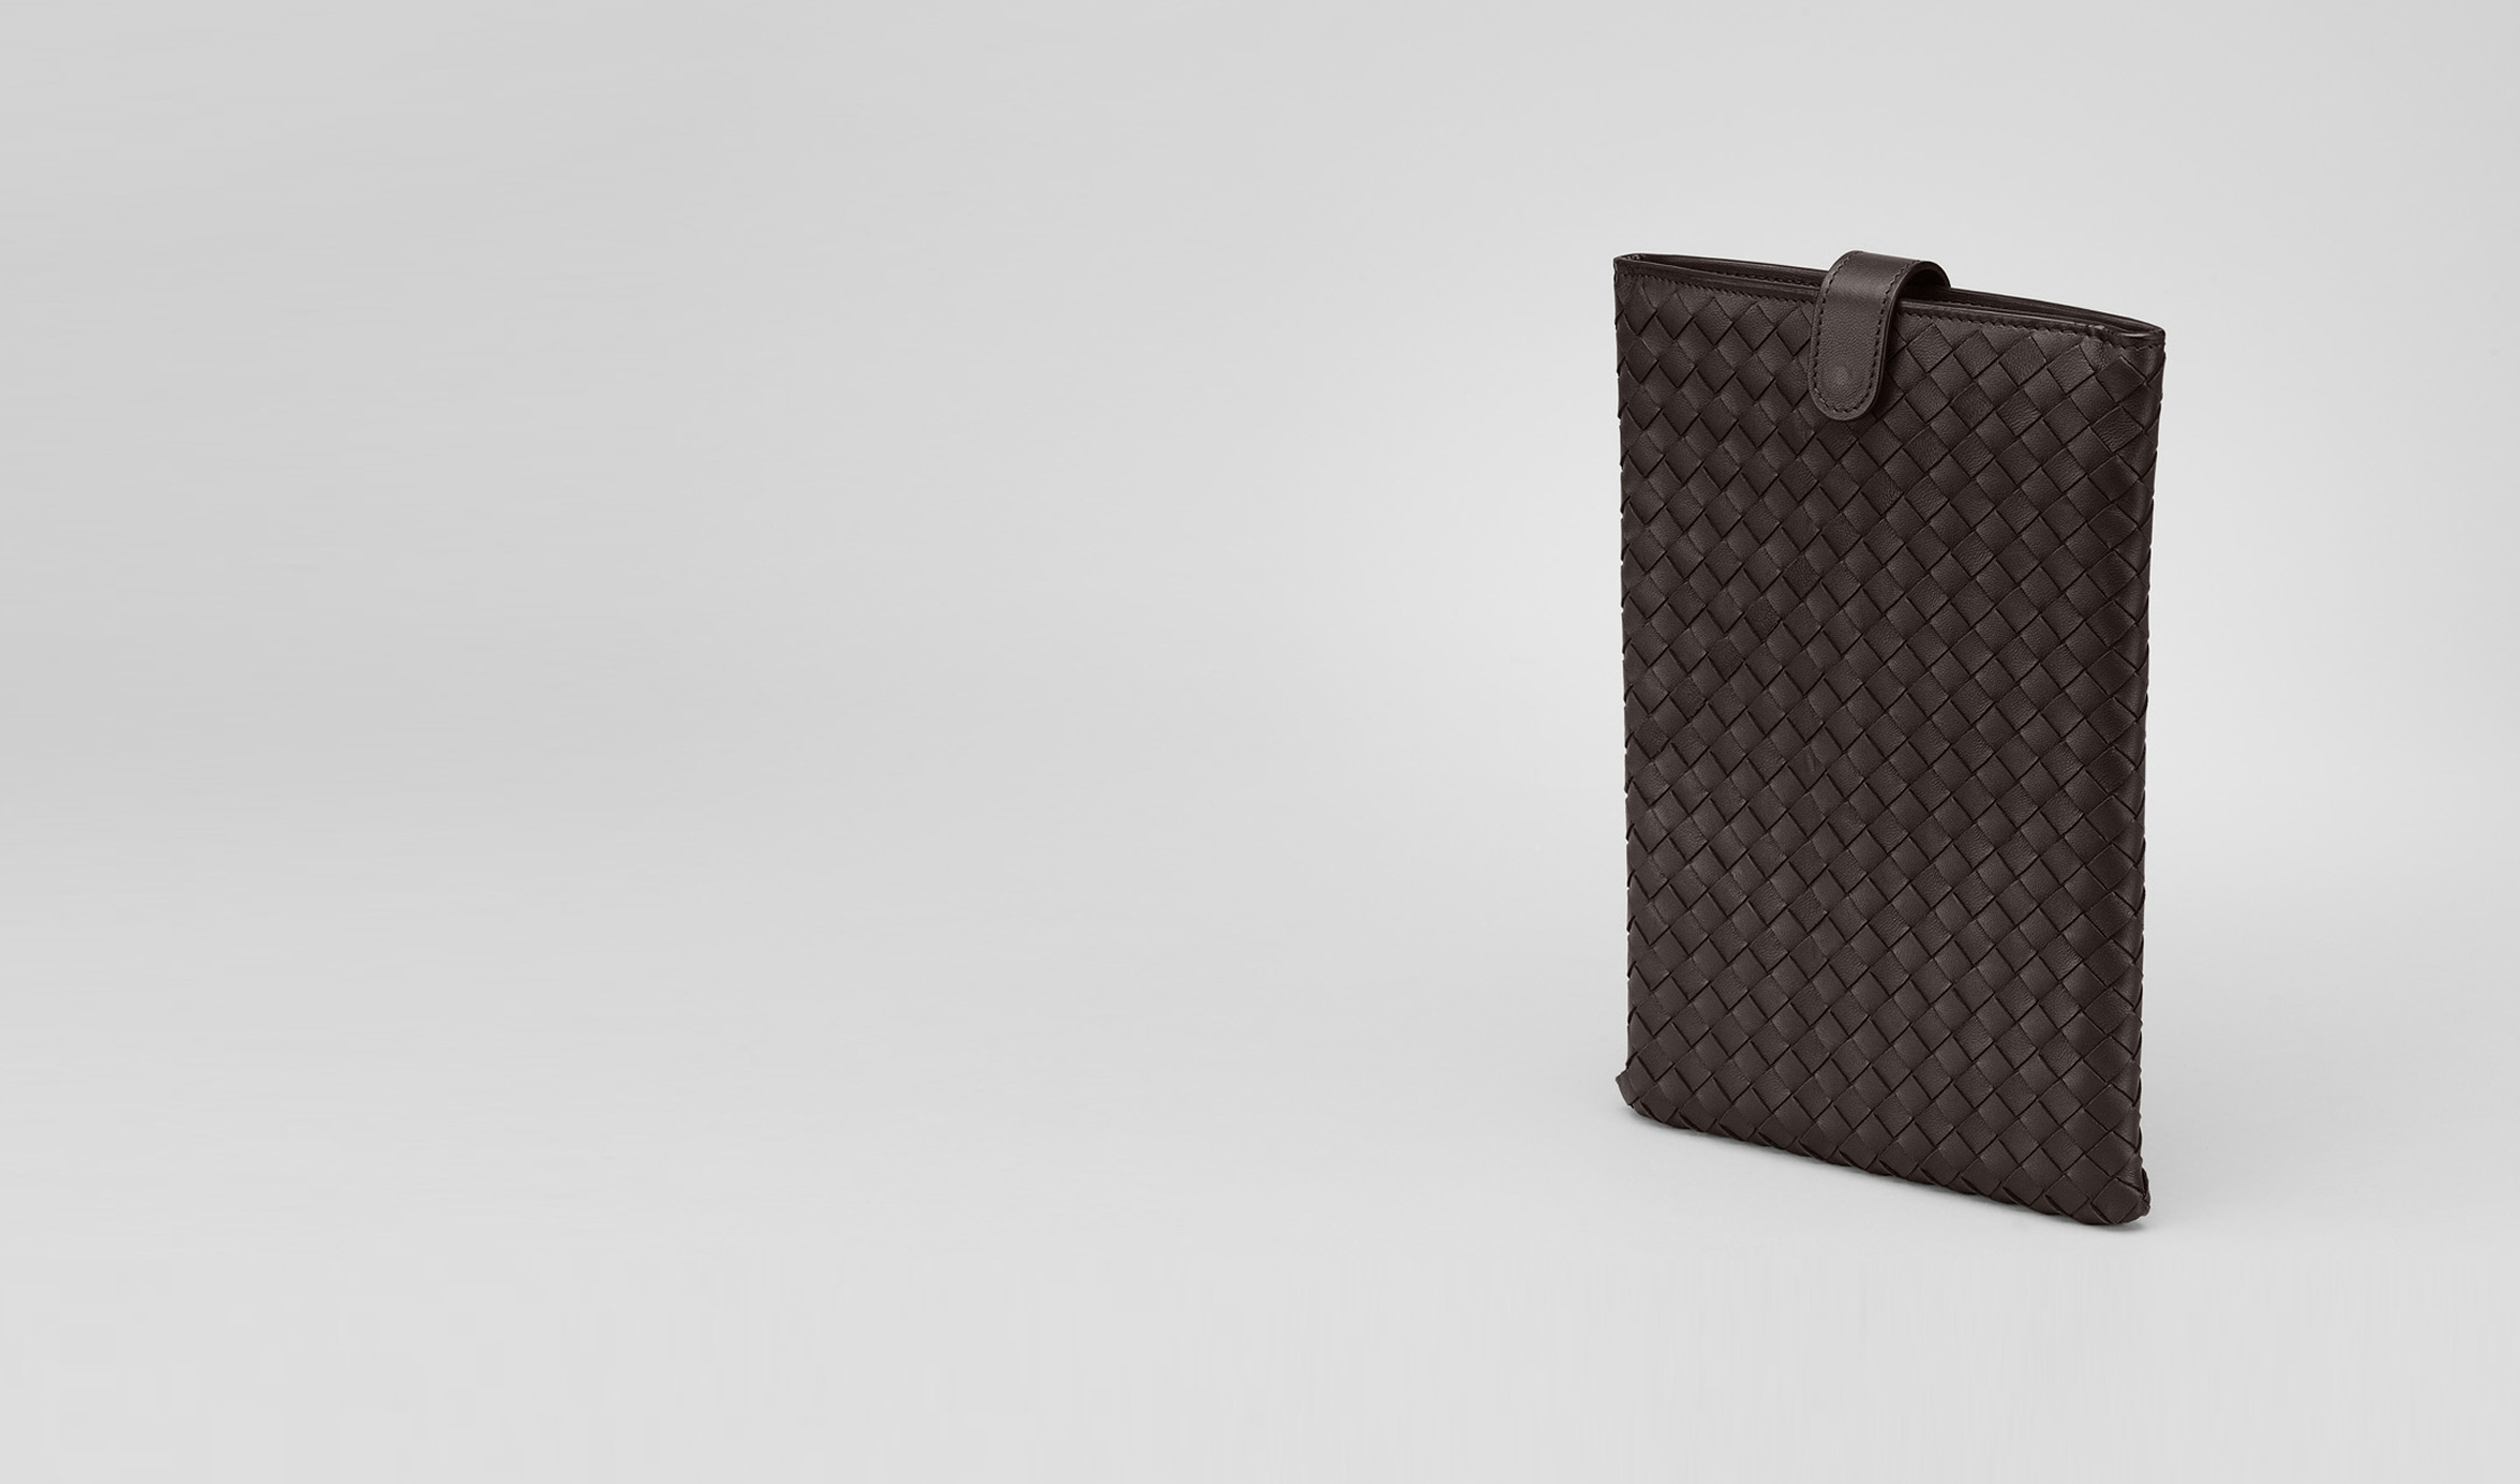 BOTTEGA VENETA Other Leather Accessory E Ebano Intrecciato Nappa Mini Ipad Case pl